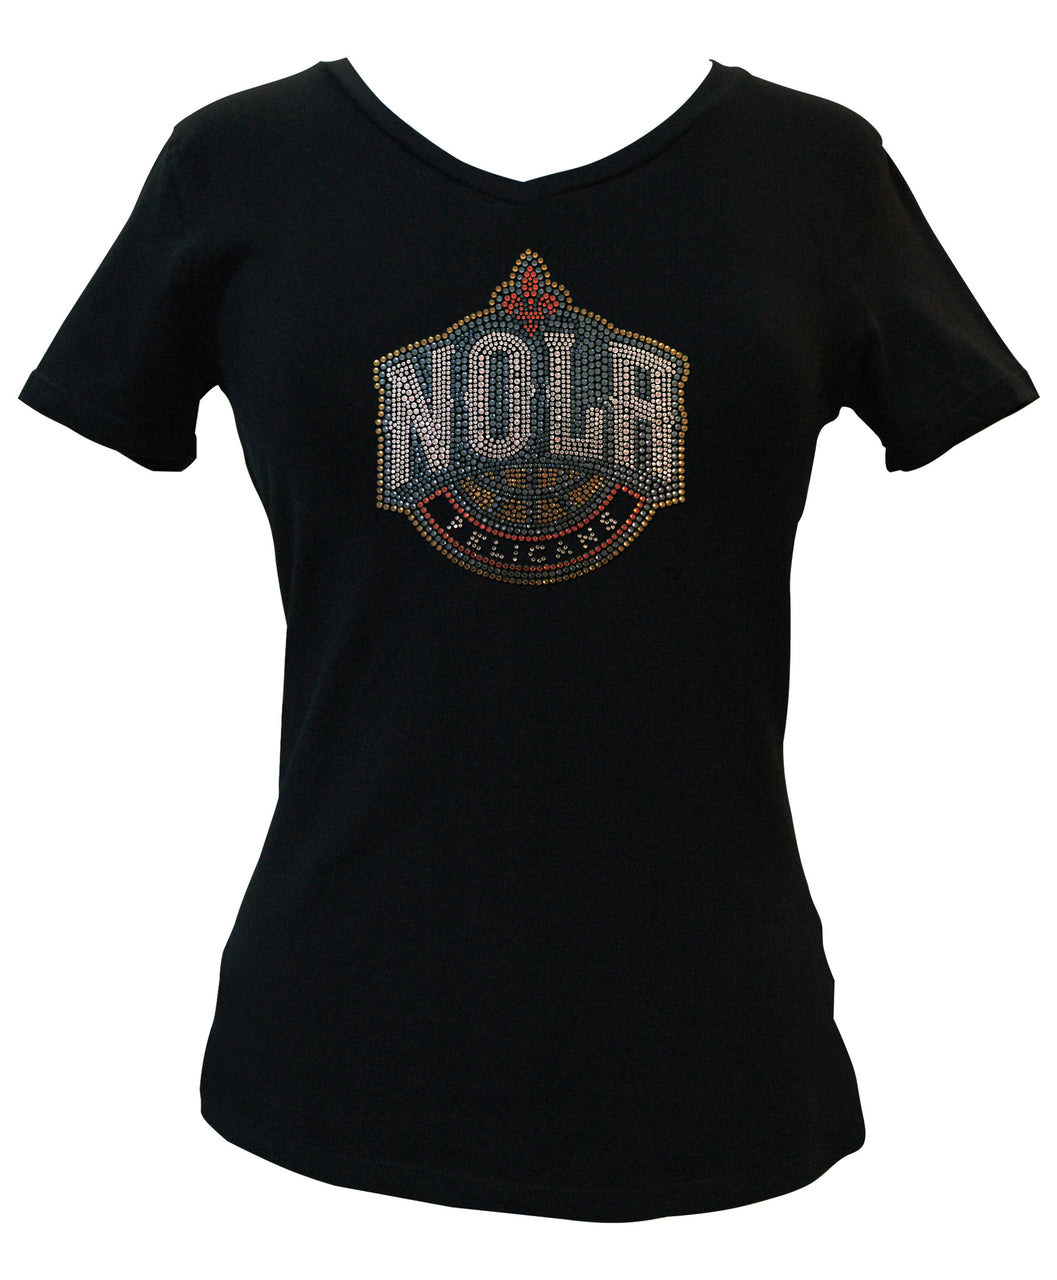 Official New Orleans Pelicans Rhinestone V-Neck Tee